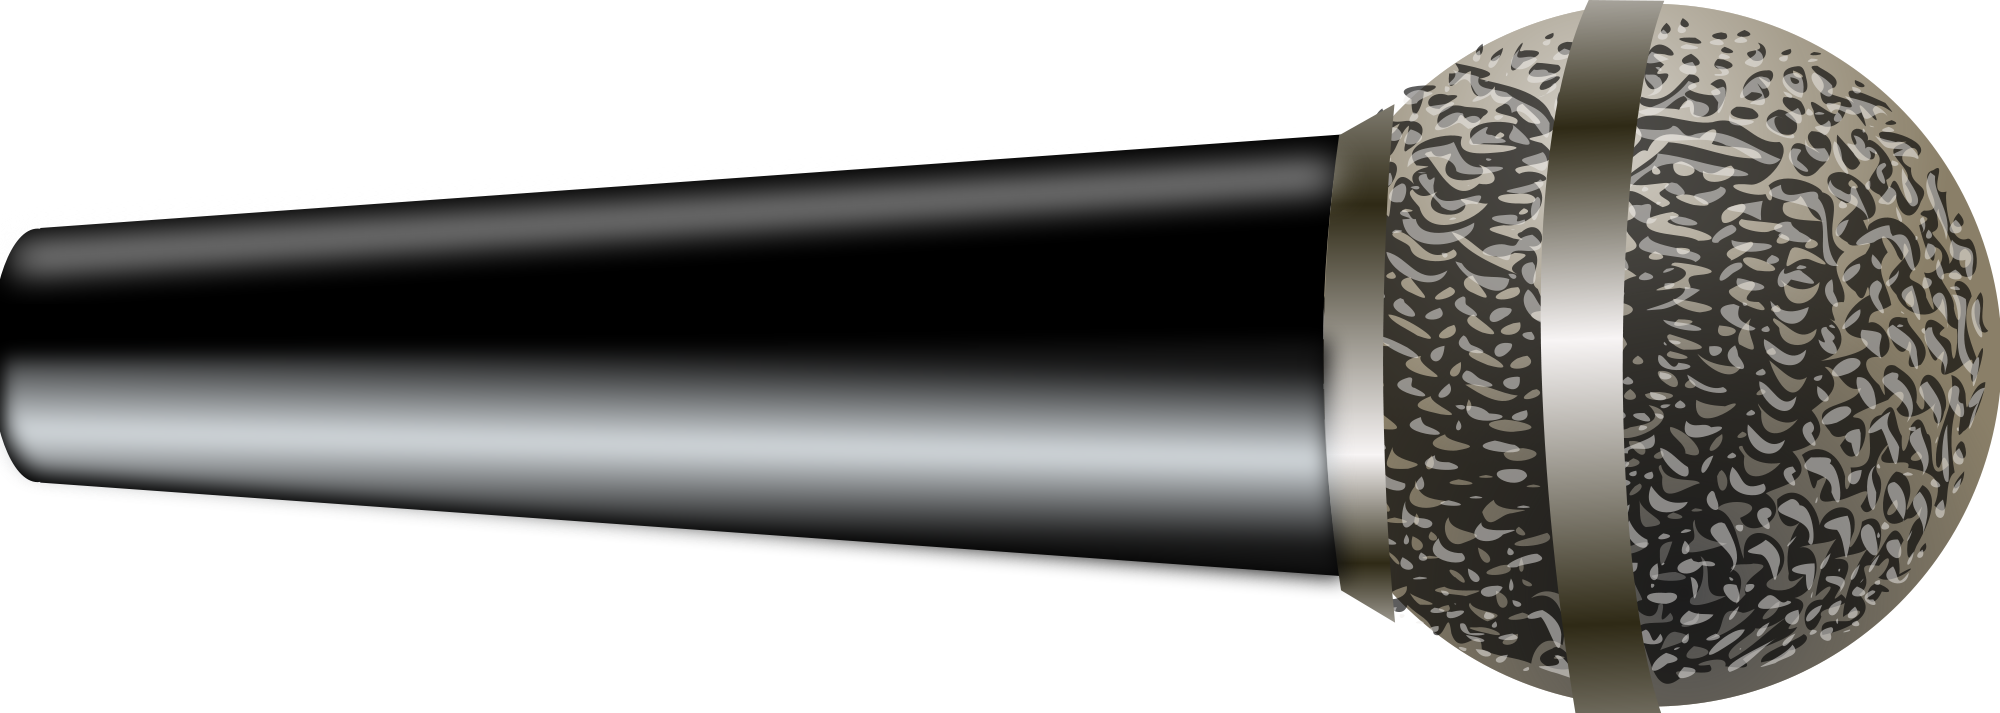 Microphone clipart media. File svg wikimedia commons